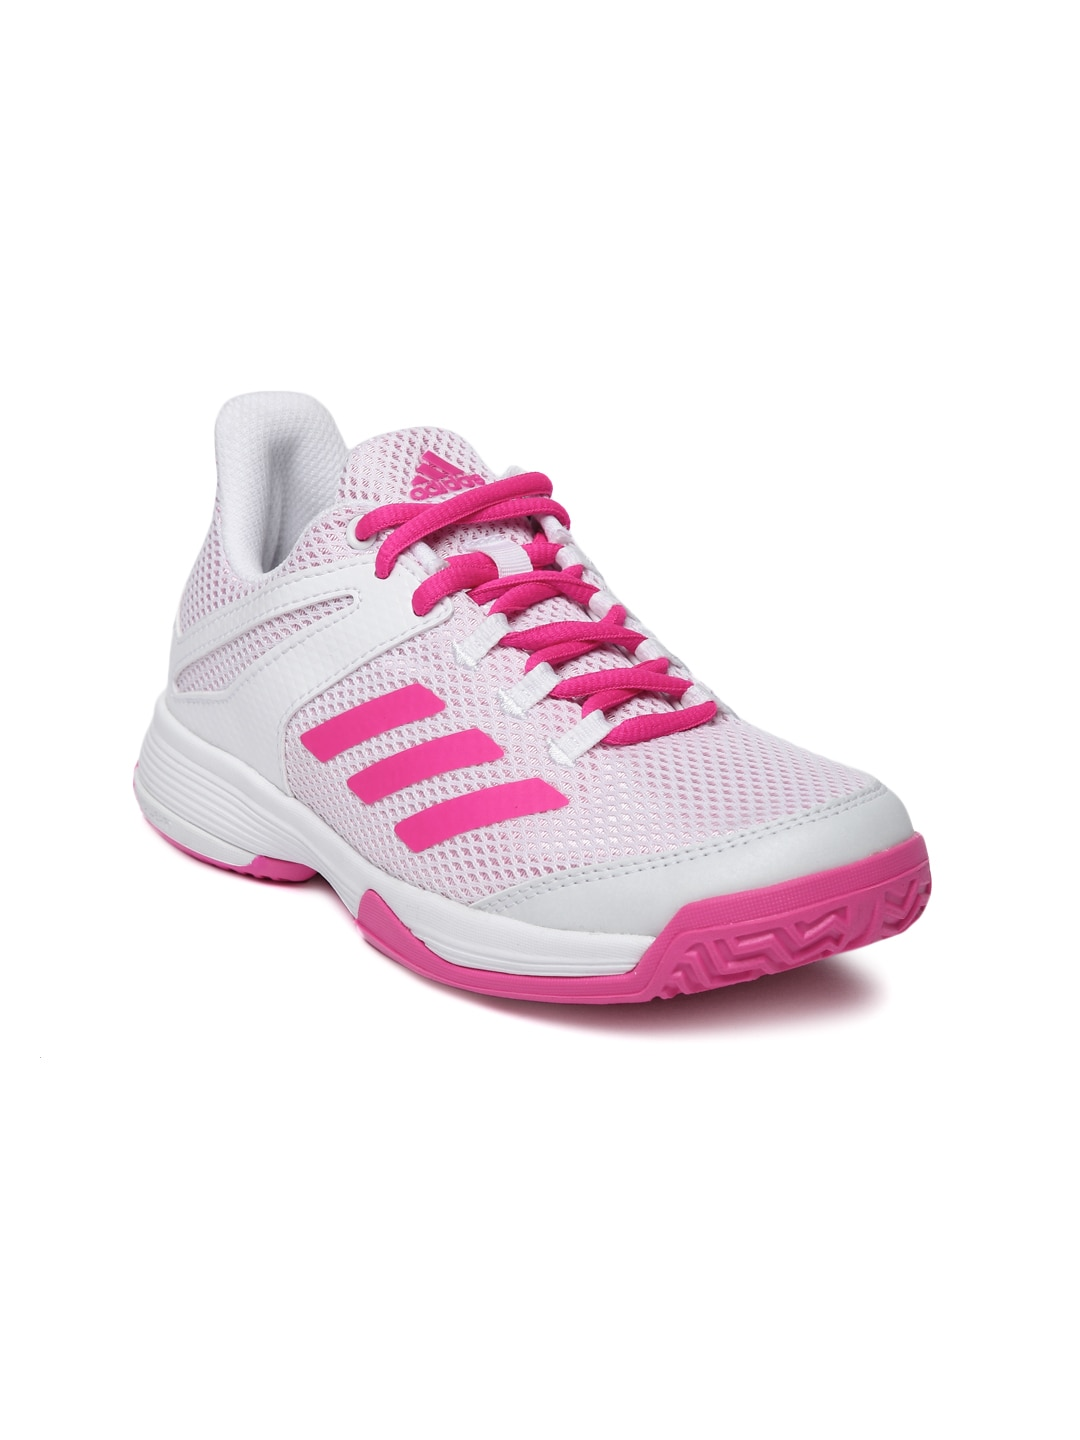 Non Marking Shoes For Tennis - Buy Non Marking Shoes For Tennis online in  India 9f73a84fd